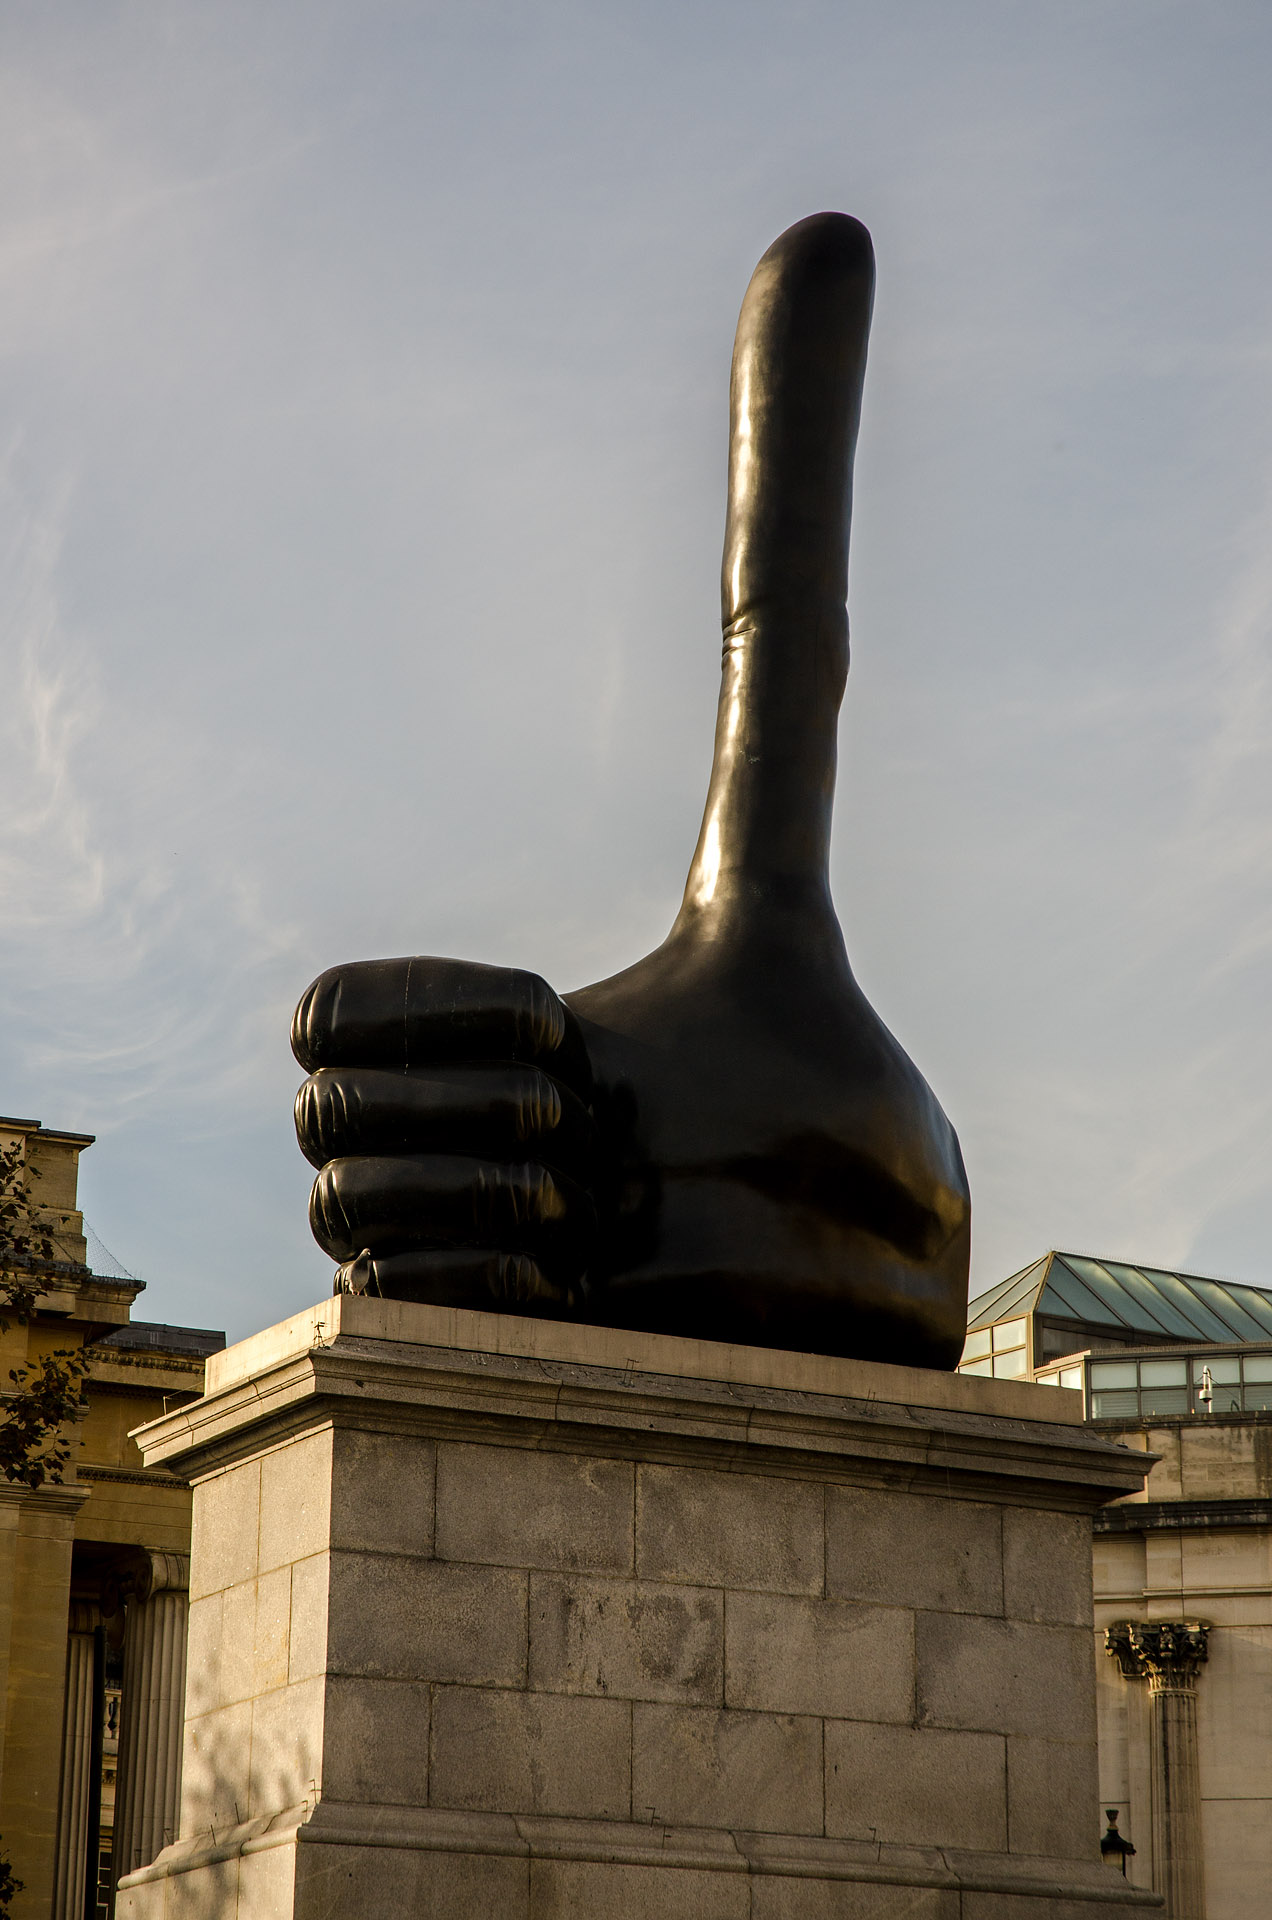 'Really Good' (Trafalgar Square)